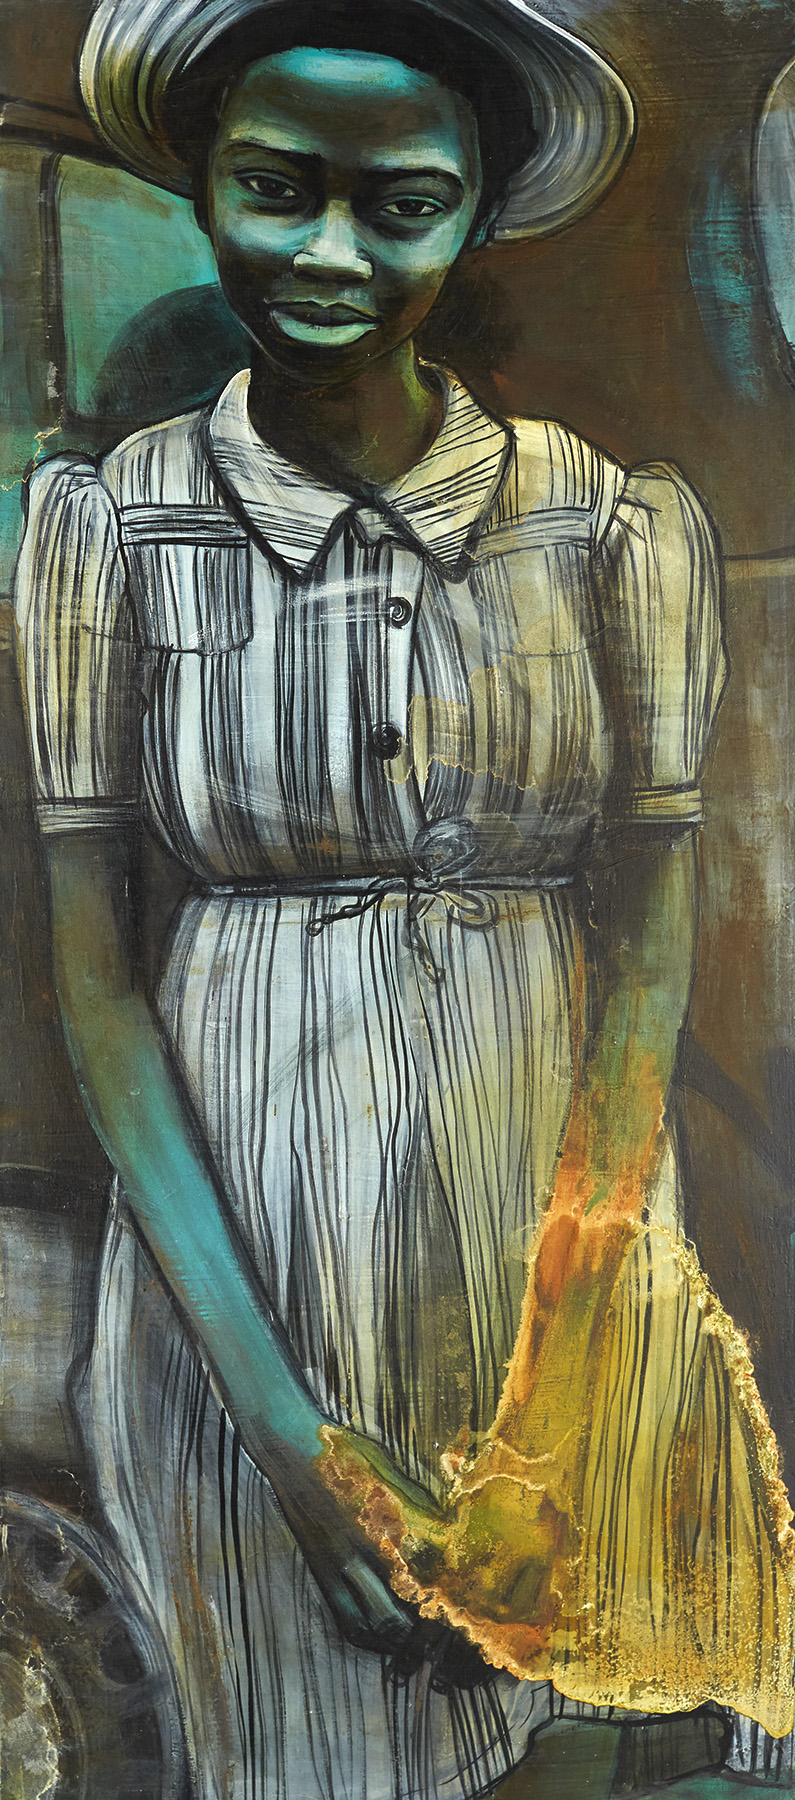 Girl in Striped Dress, 2014